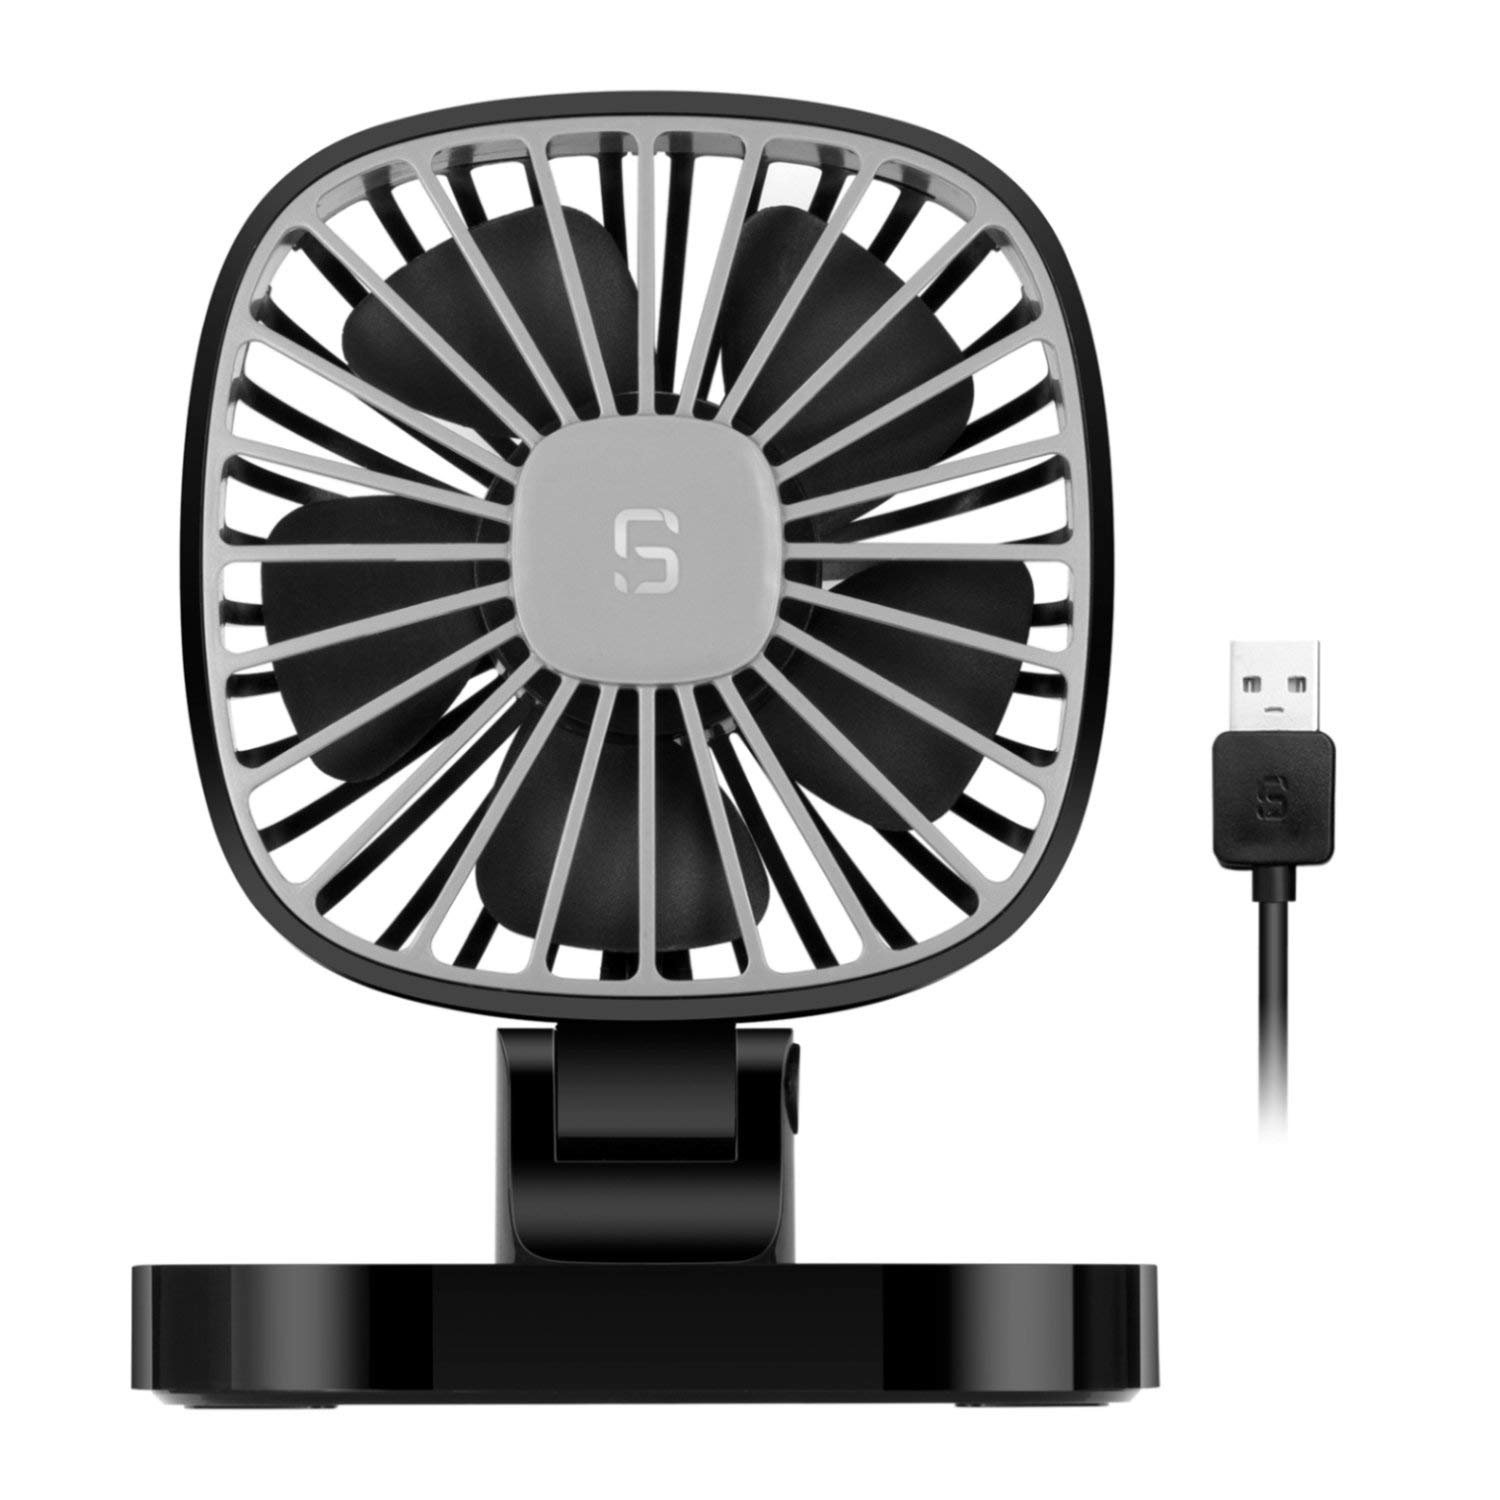 COMLIFE 5V USB Electric Car Fan, 4 Inch Rotatable Car Cooling Fan with 3 Speeds, Quiet Powerful Car Air Circulator Fan for All Family Car, Sedan, SUV, Golf Cart, Truck, Boat or Other Vehicles